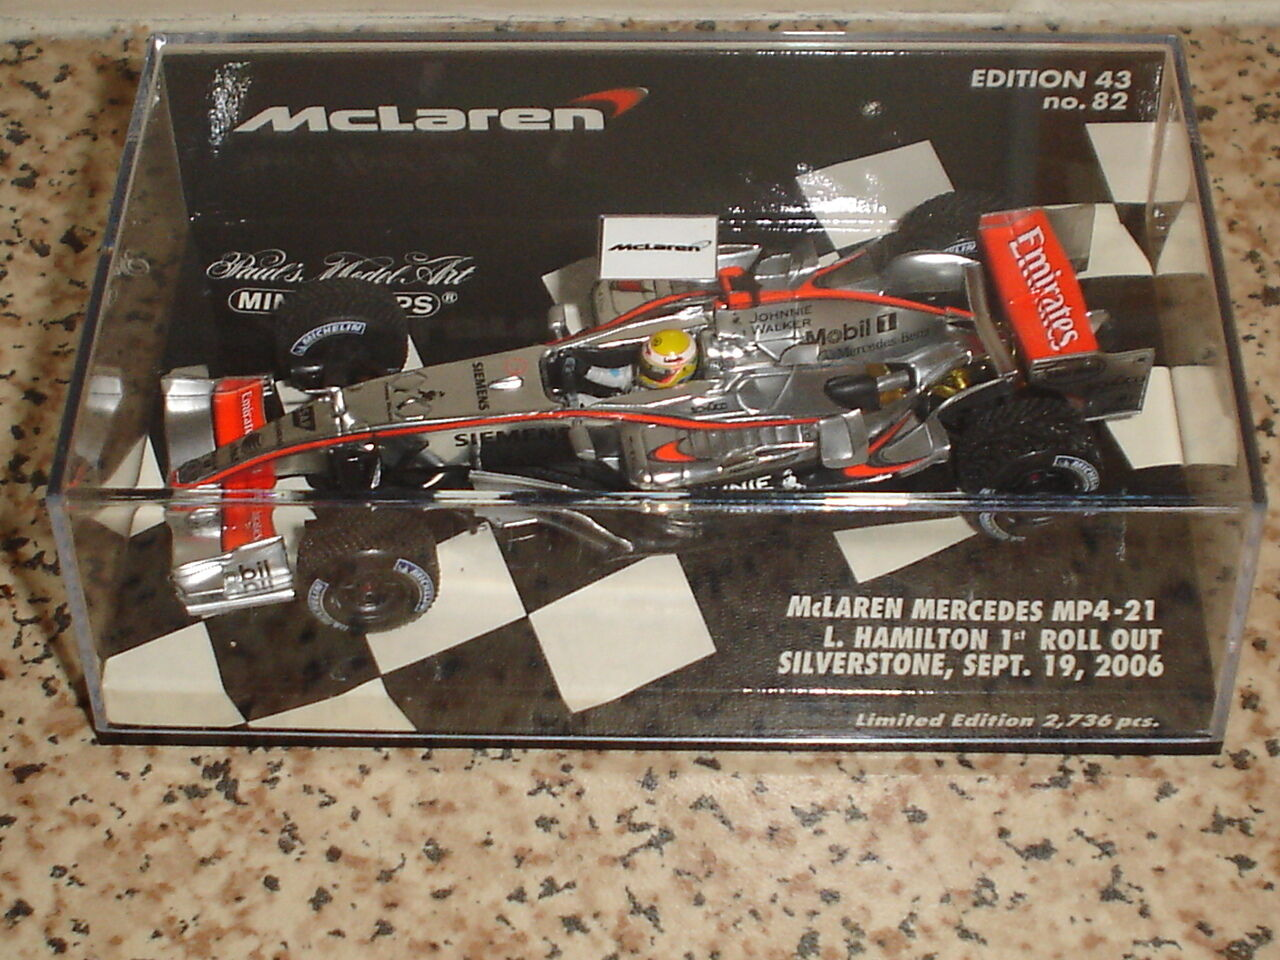 McLaren F1 Hamilton 1st.Roll Out 2006 - Ltd.Edition -1 43 - Rare & Collectable